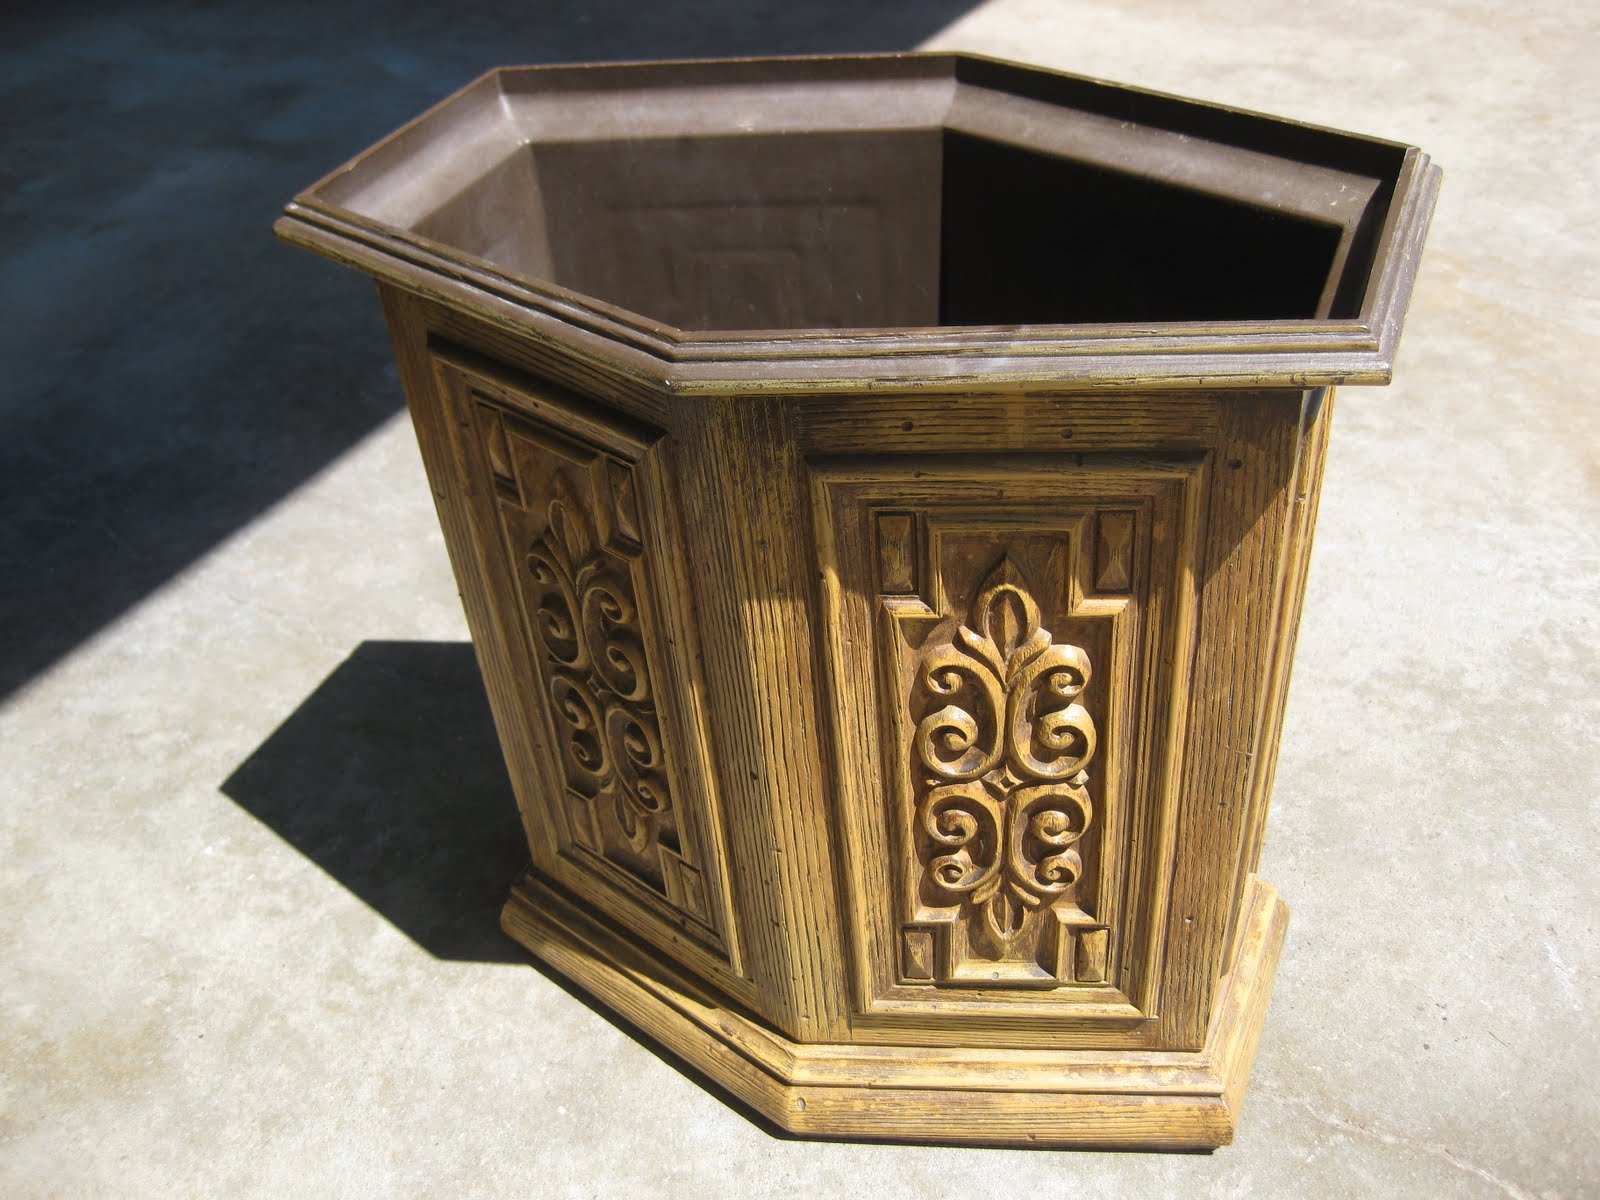 Diy tutorial antiquing wood Shabby Chic The Original Wastebasket Was Not Very Cute But Makes For The Perfect Canvas To Antique Reality Daydream Diy Glazing And Antiquing Furniture Tutorial Reality Daydream